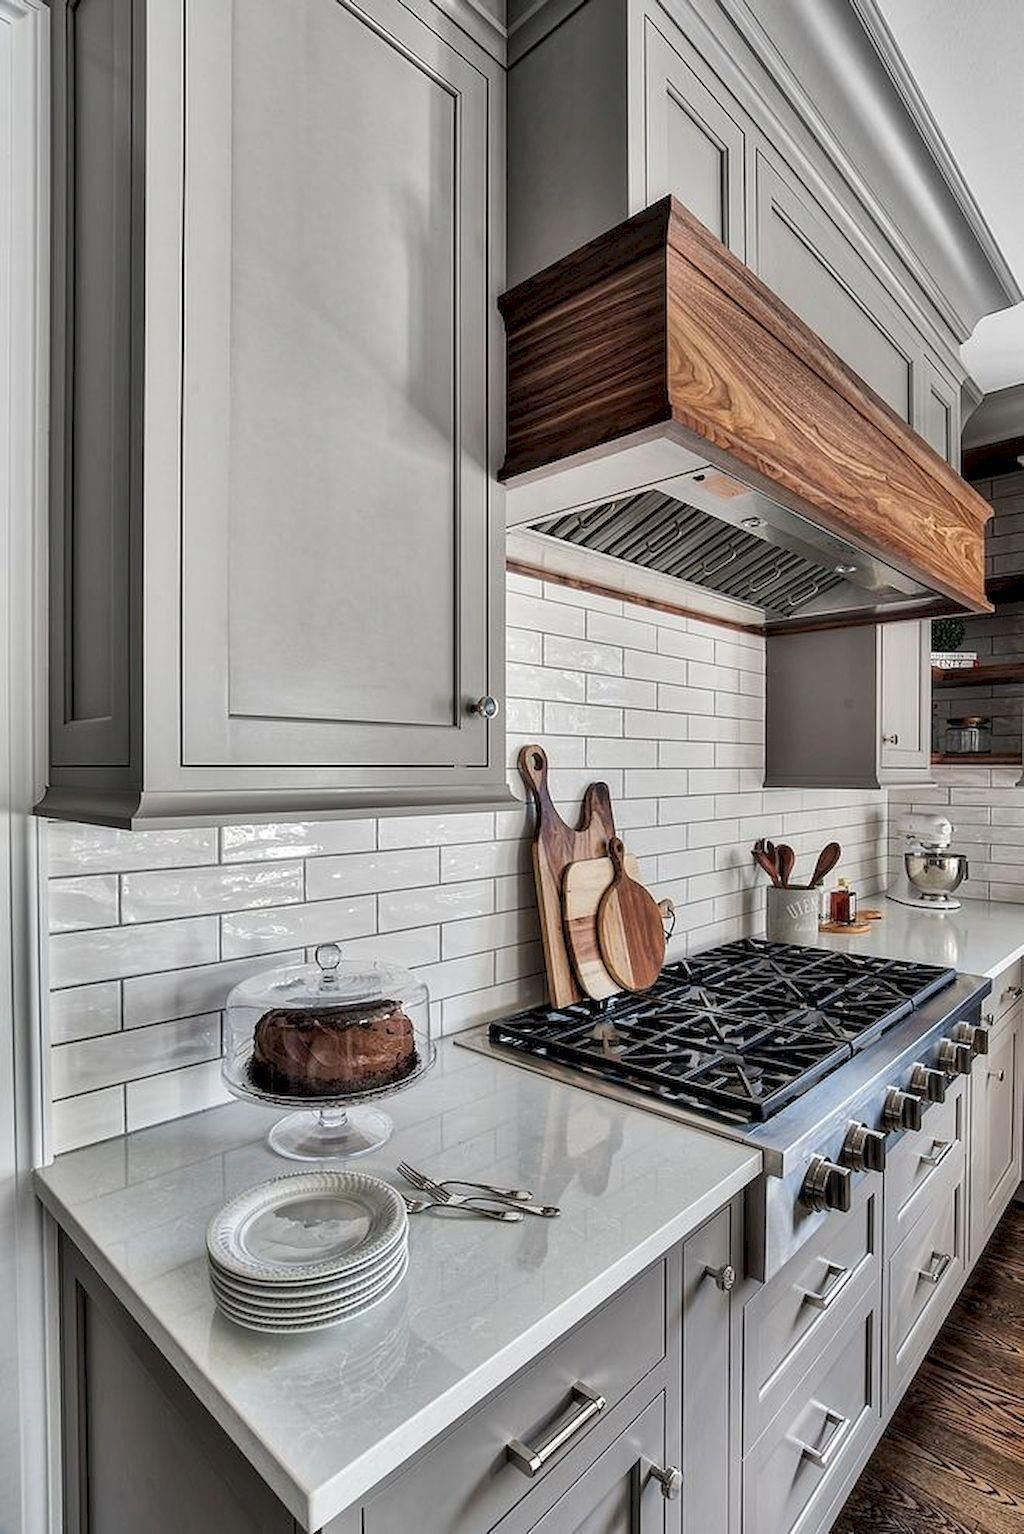 10x10 Kitchen Remodel: Incredible! Attractive Looking. 10x10 Kitchen Remodel In